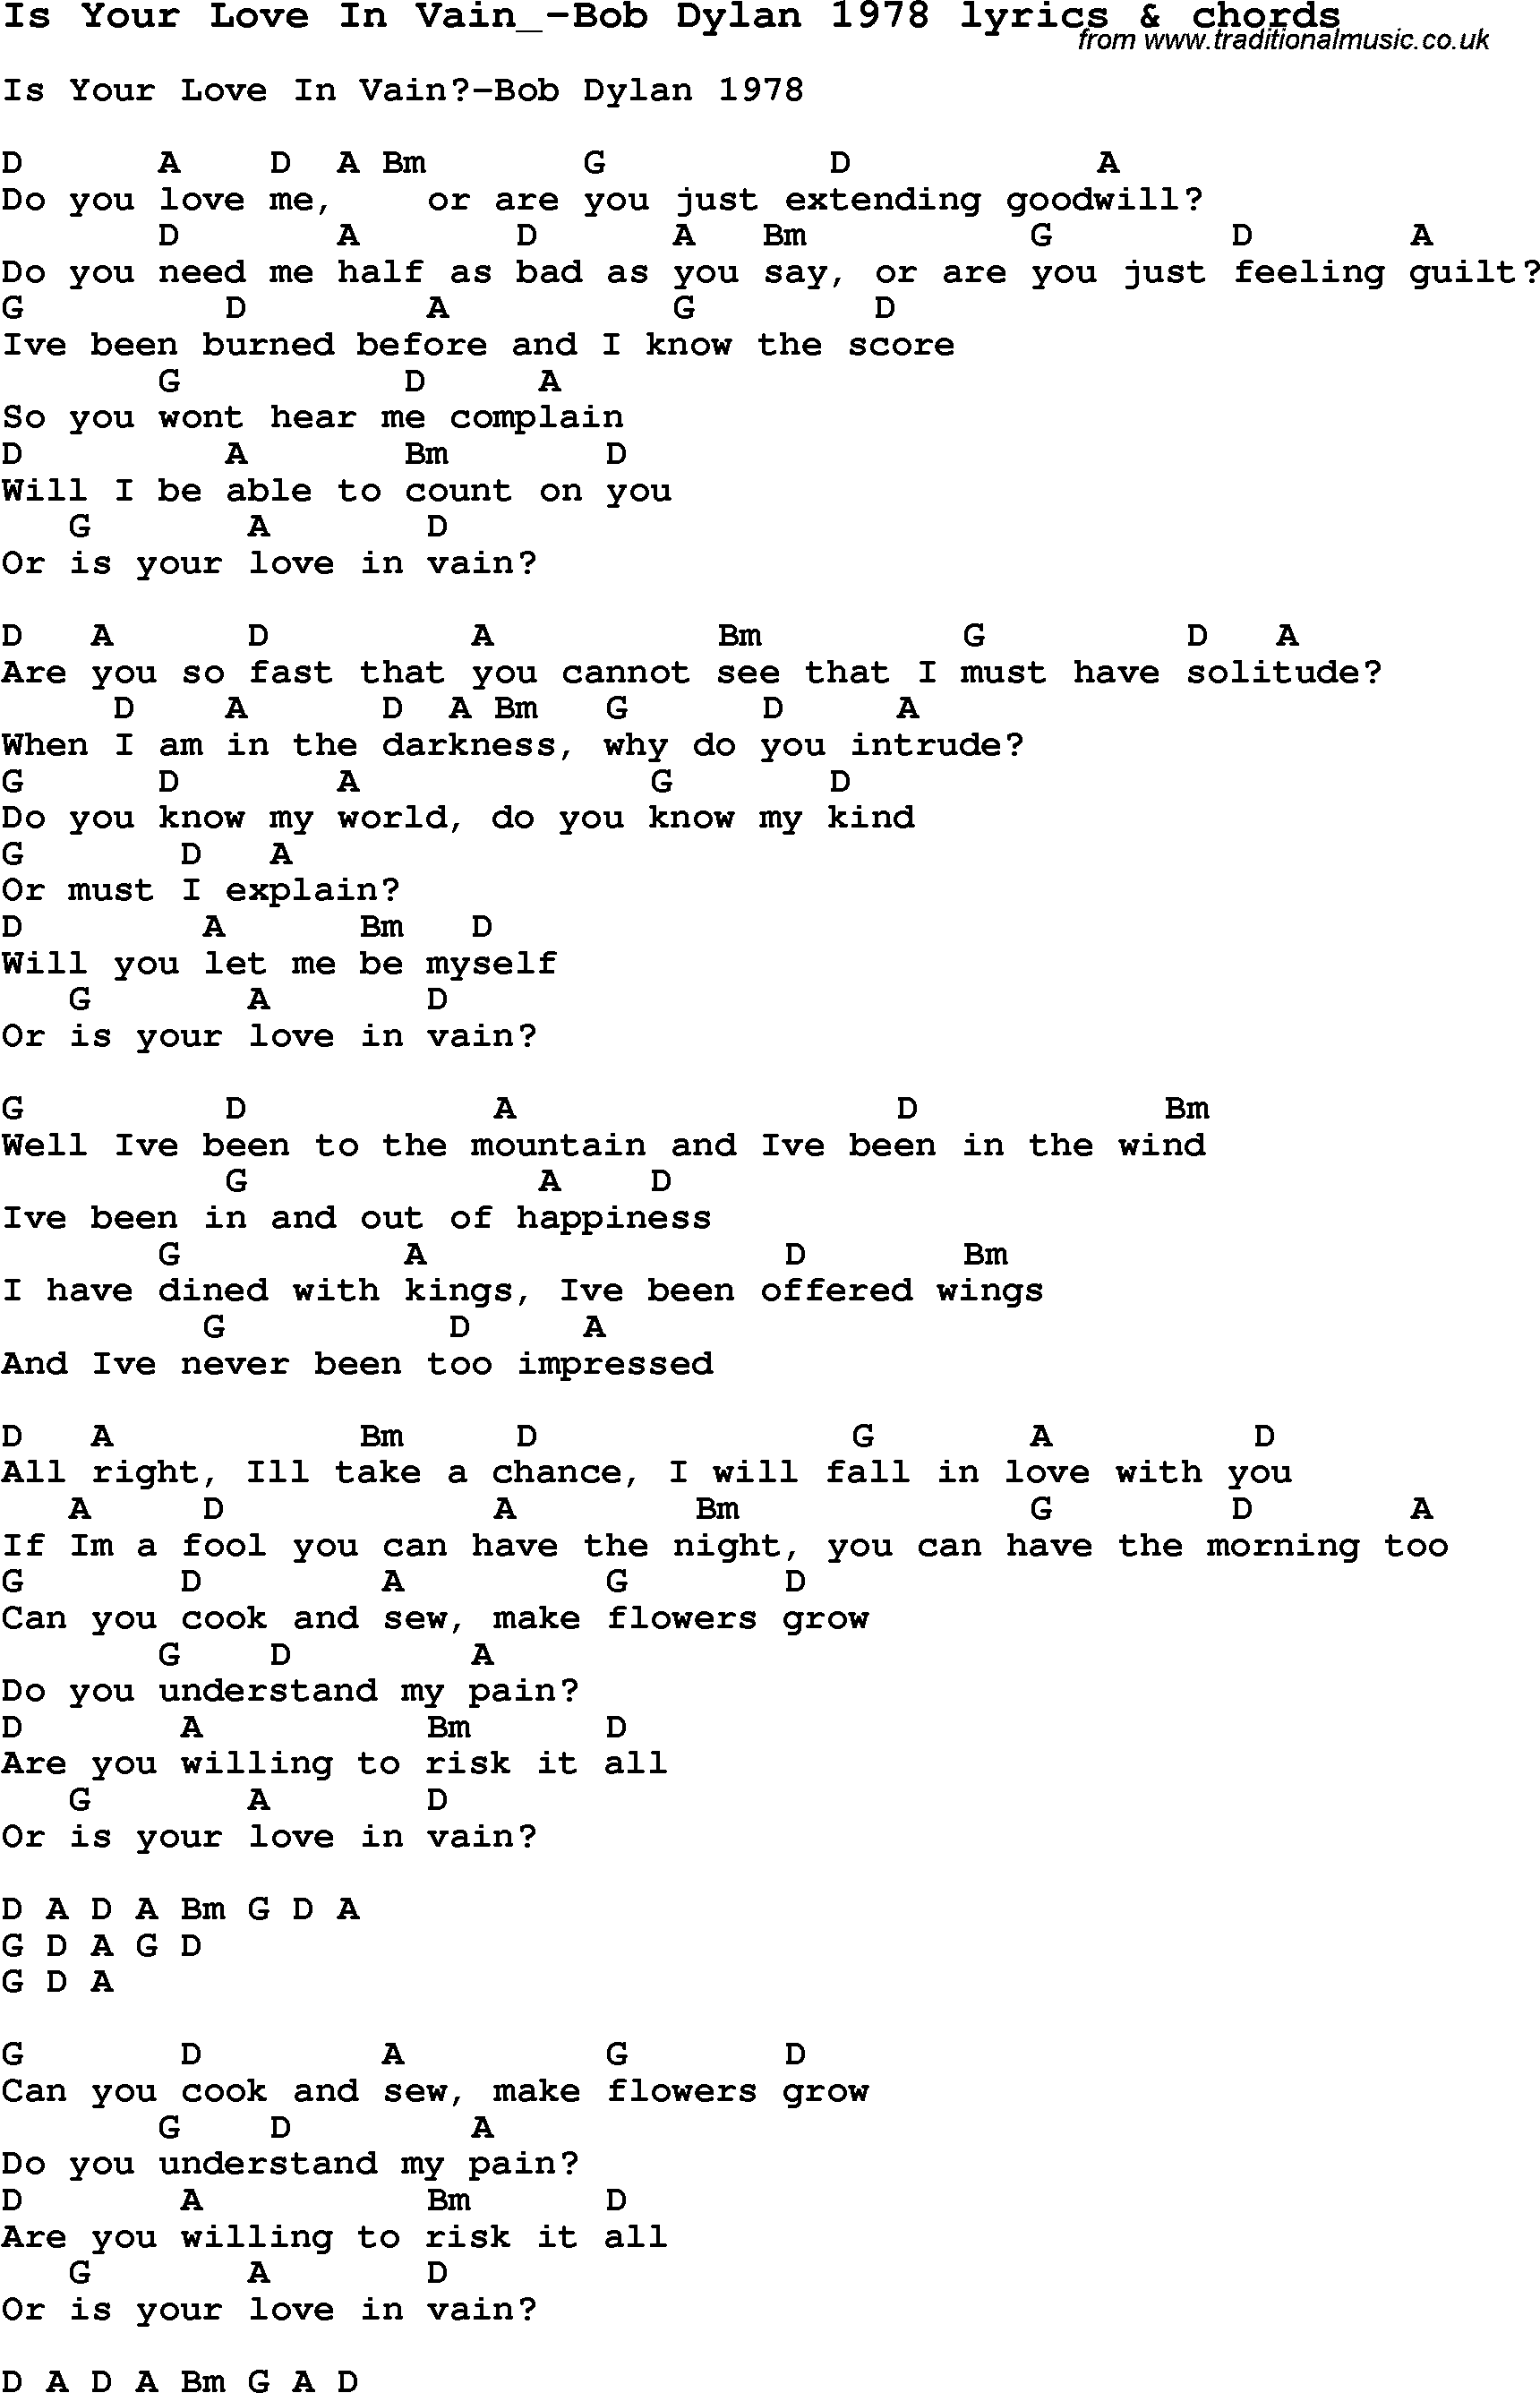 Bob Dylan – Is Your Love In Vain? Lyrics | Genius Lyrics